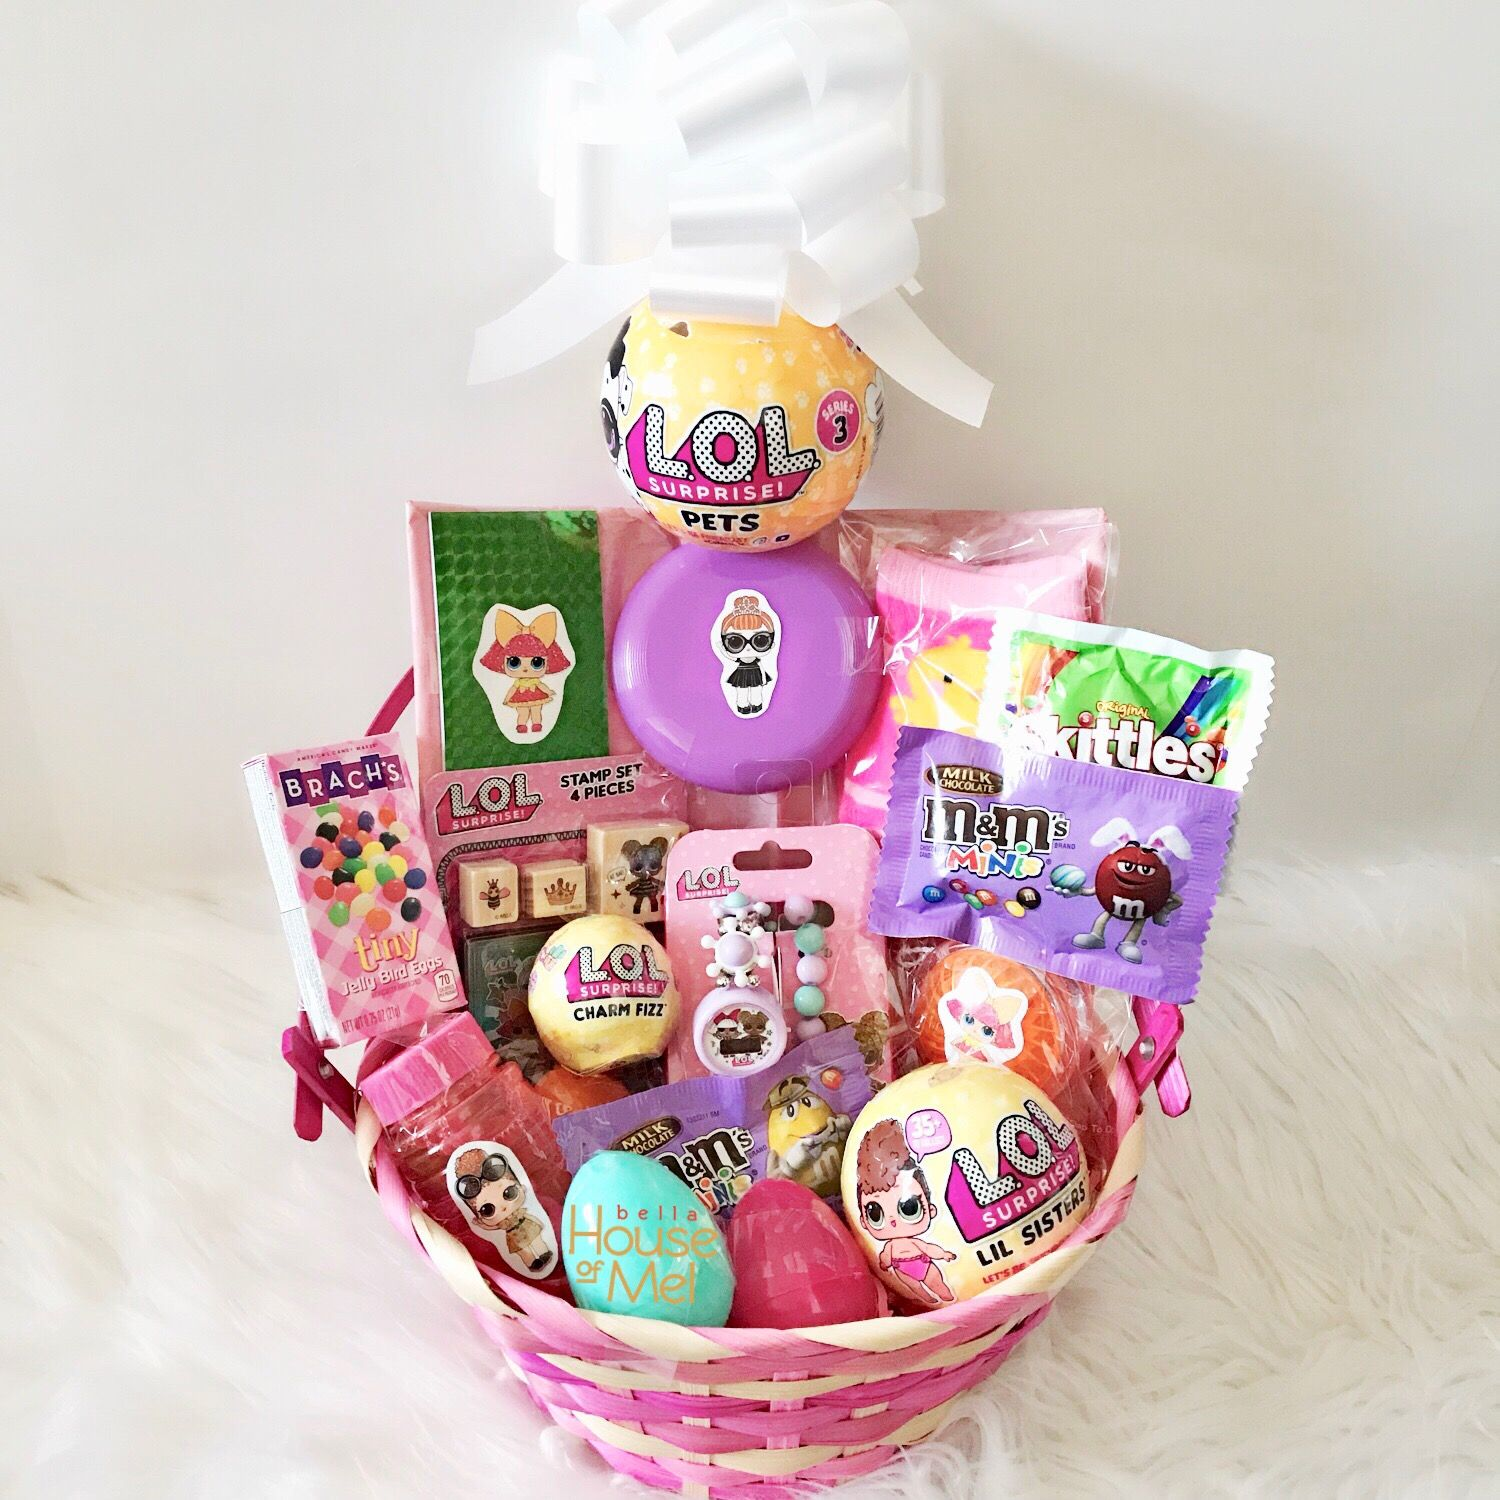 Lol surprise doll custom easter basket lolsurprise easter bella house of mel chic fab and cool stuff negle Choice Image